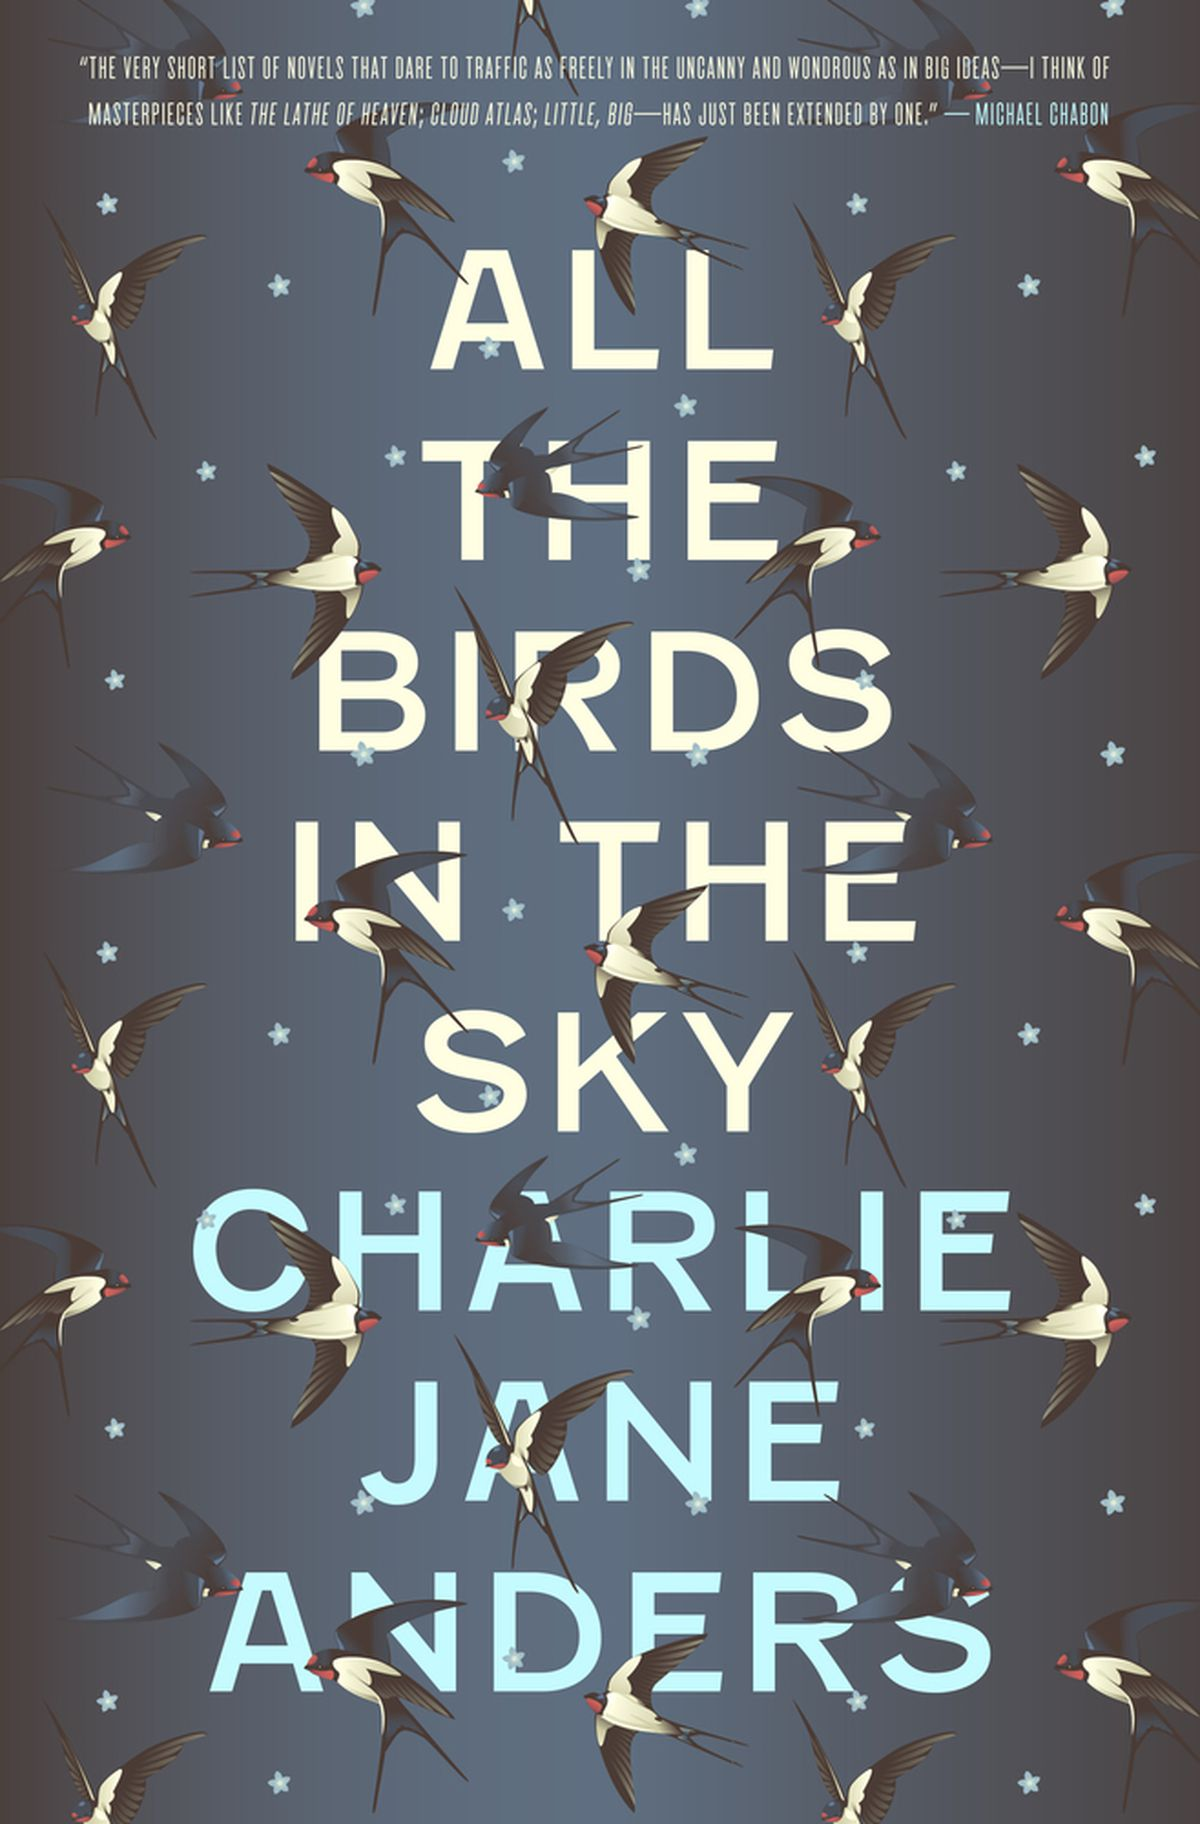 The 11 best science fiction and fantasy novels of 2016 the verge all the birds in the sky by charlie jane anders fandeluxe Gallery